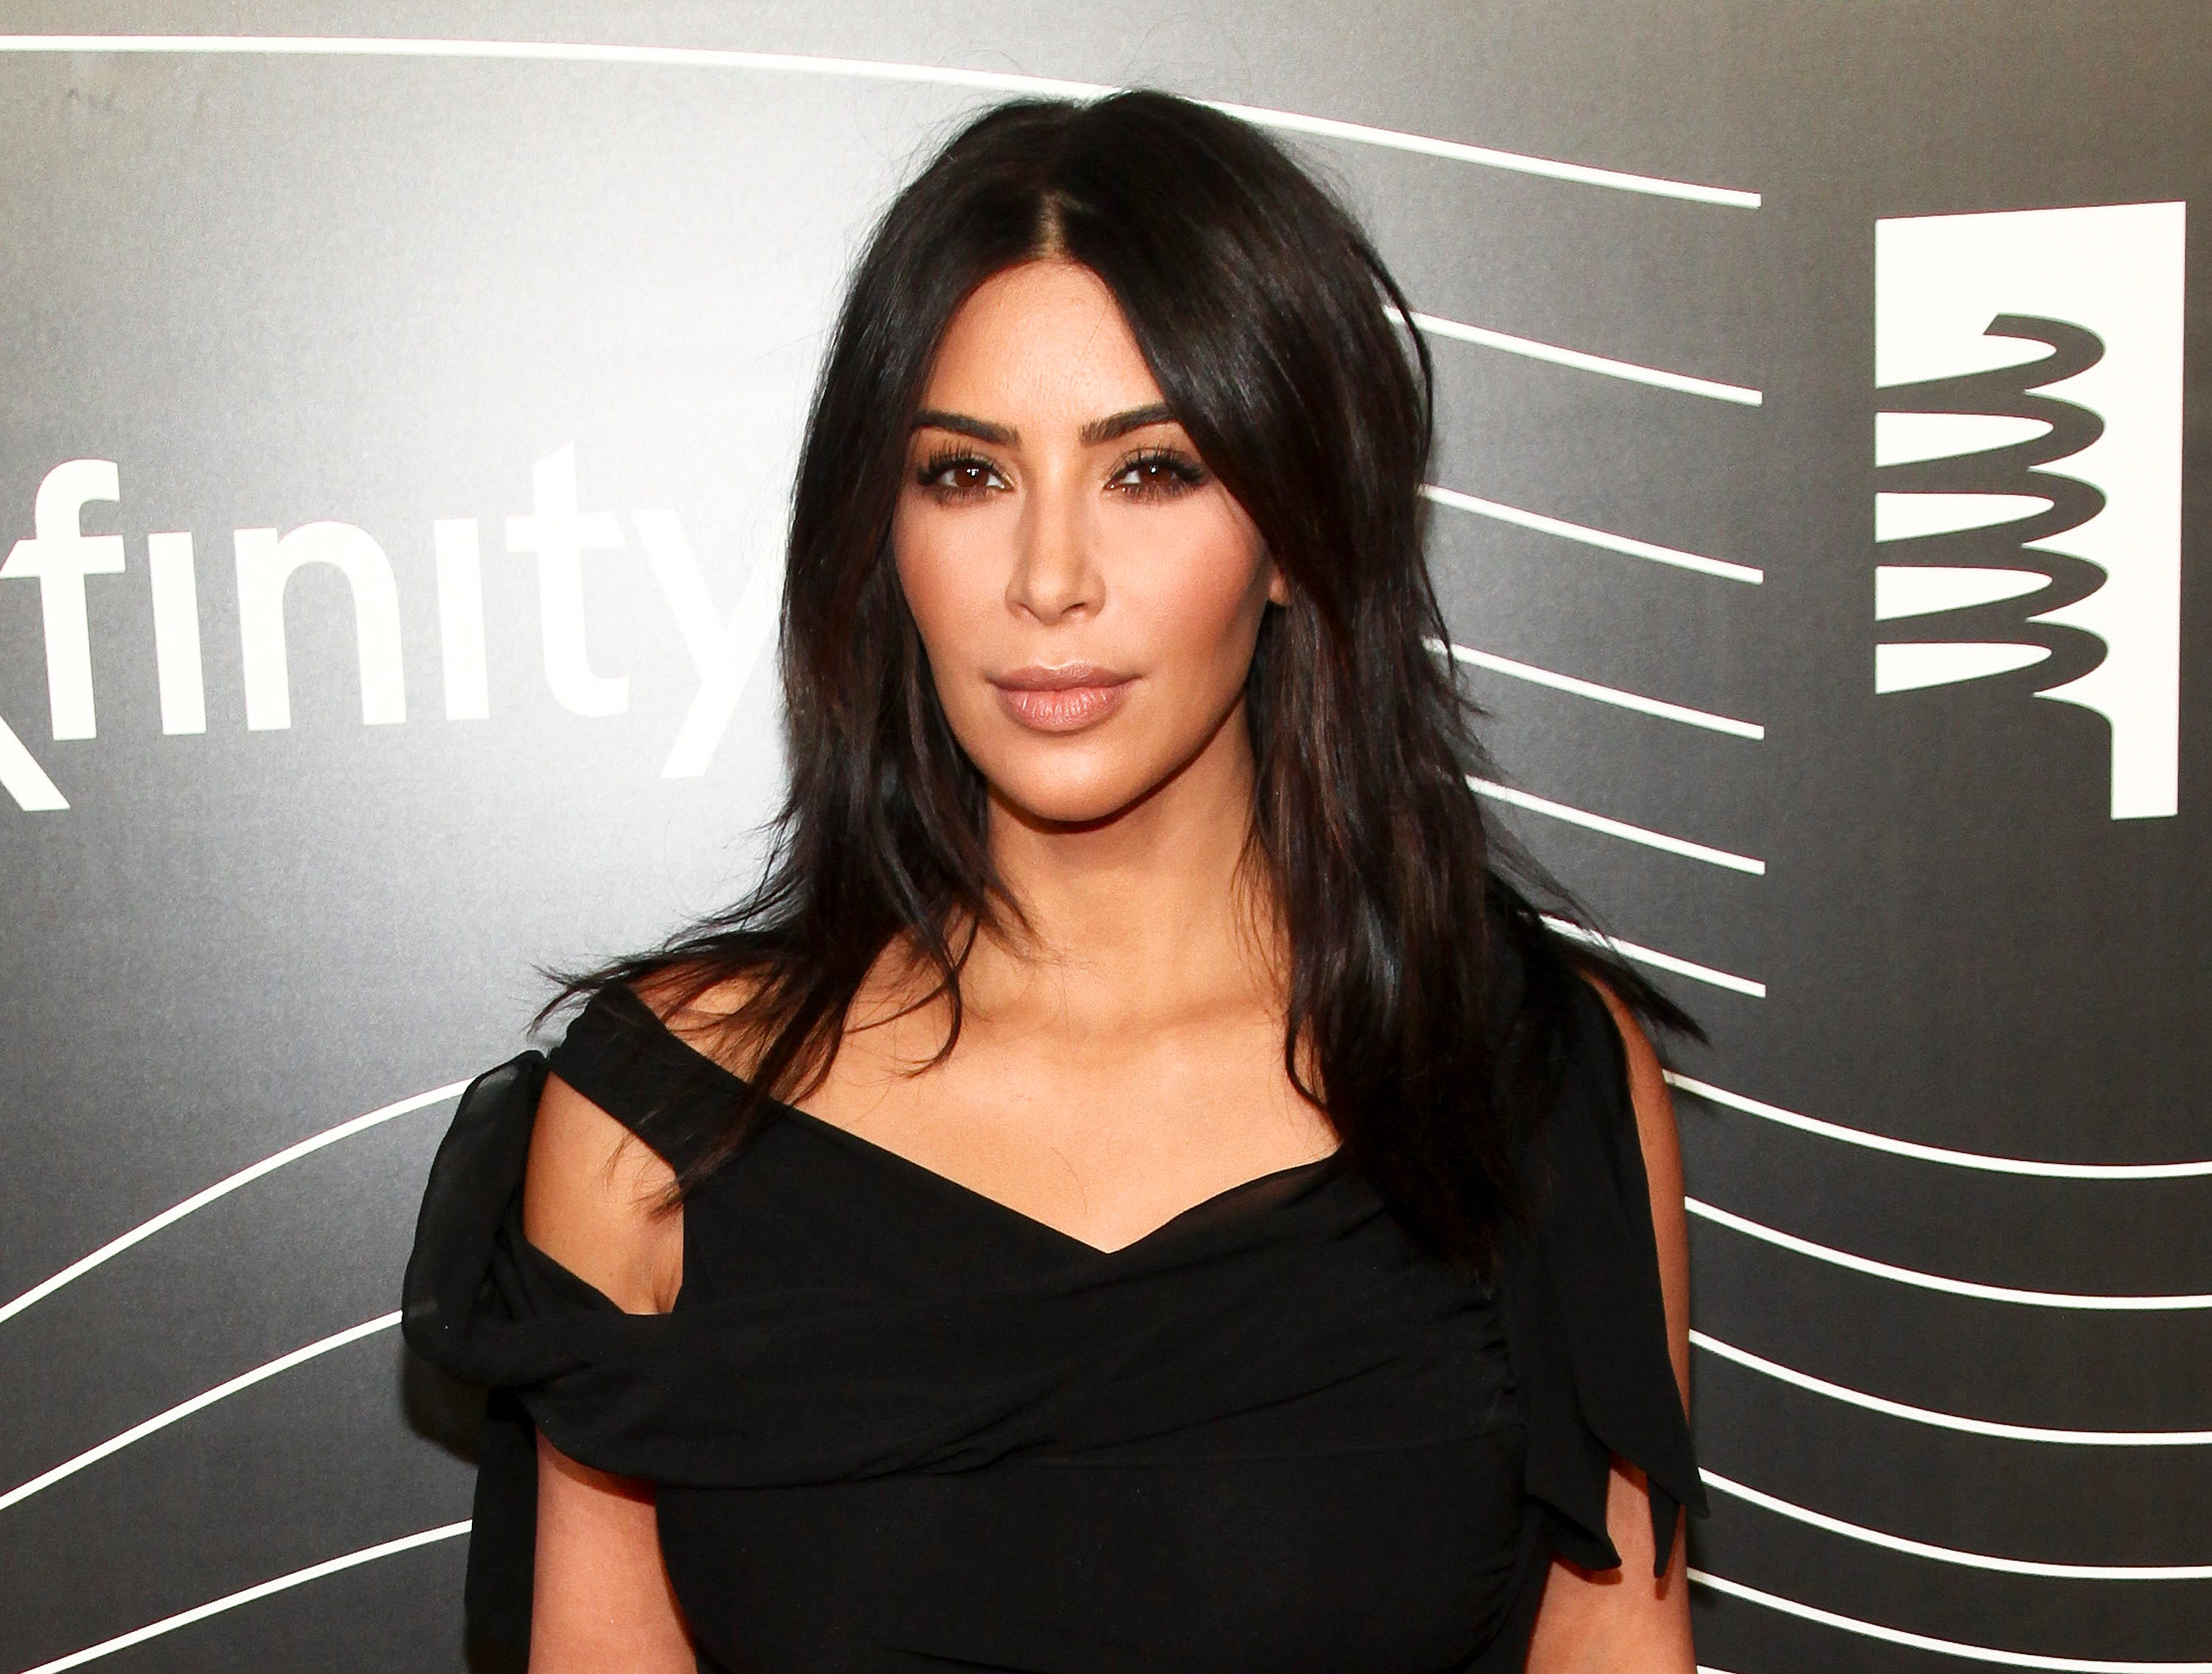 Is Kim Kardashian Responsible for Hollywood's New ButtObsession